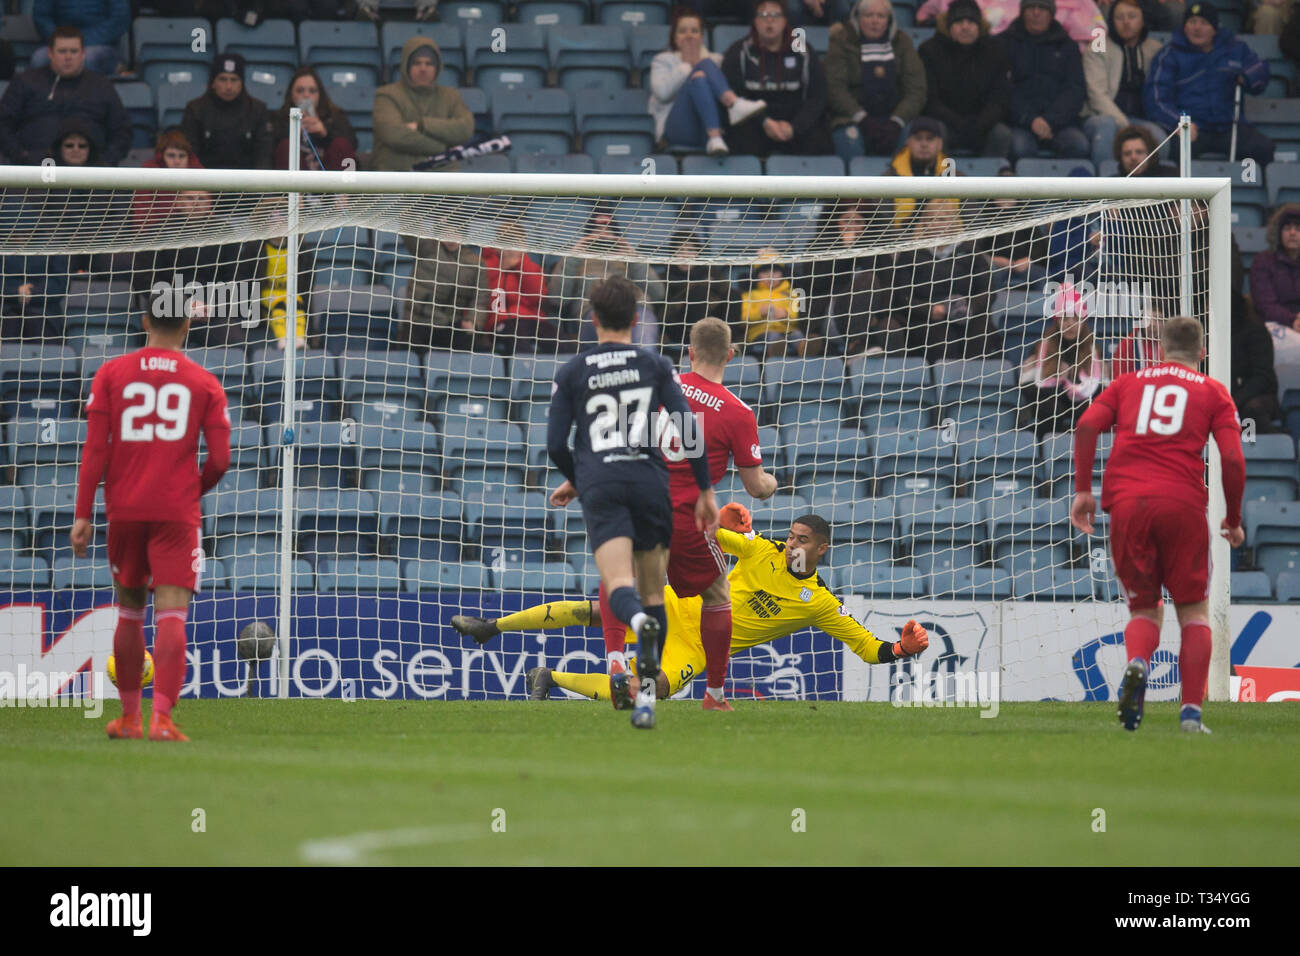 Dens Park, Dundee, UK. 6th Apr, 2019. Ladbrokes Premiership football, Dundee versus Aberdeen; Sam Cosgrove of Aberdeen scores for 1-0 from the penalty spot in the 58th minute Credit: Action Plus Sports/Alamy Live News - Stock Image